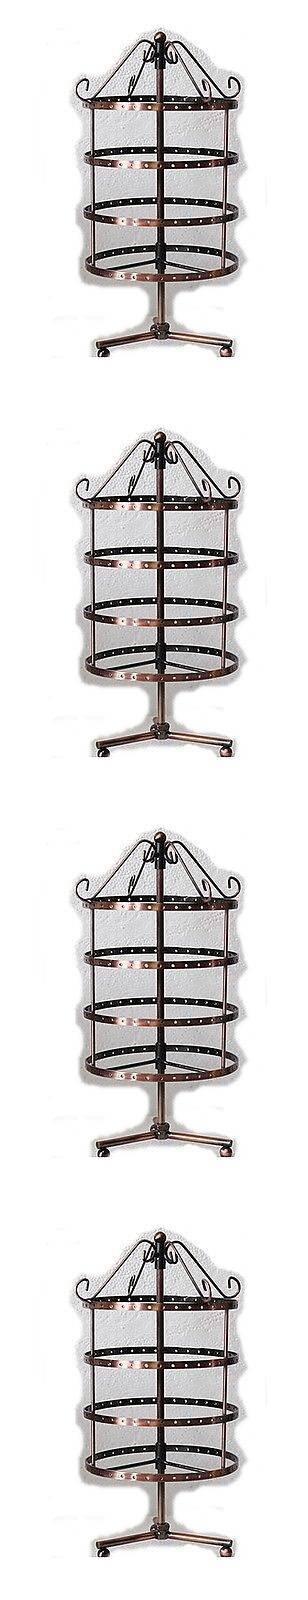 Earring 168161: **Pick-Up - Acworth Ga New - 4 - Earring Display Stands - Rotate - 144 Holes Ea. -> BUY IT NOW ONLY: $34.99 on eBay!